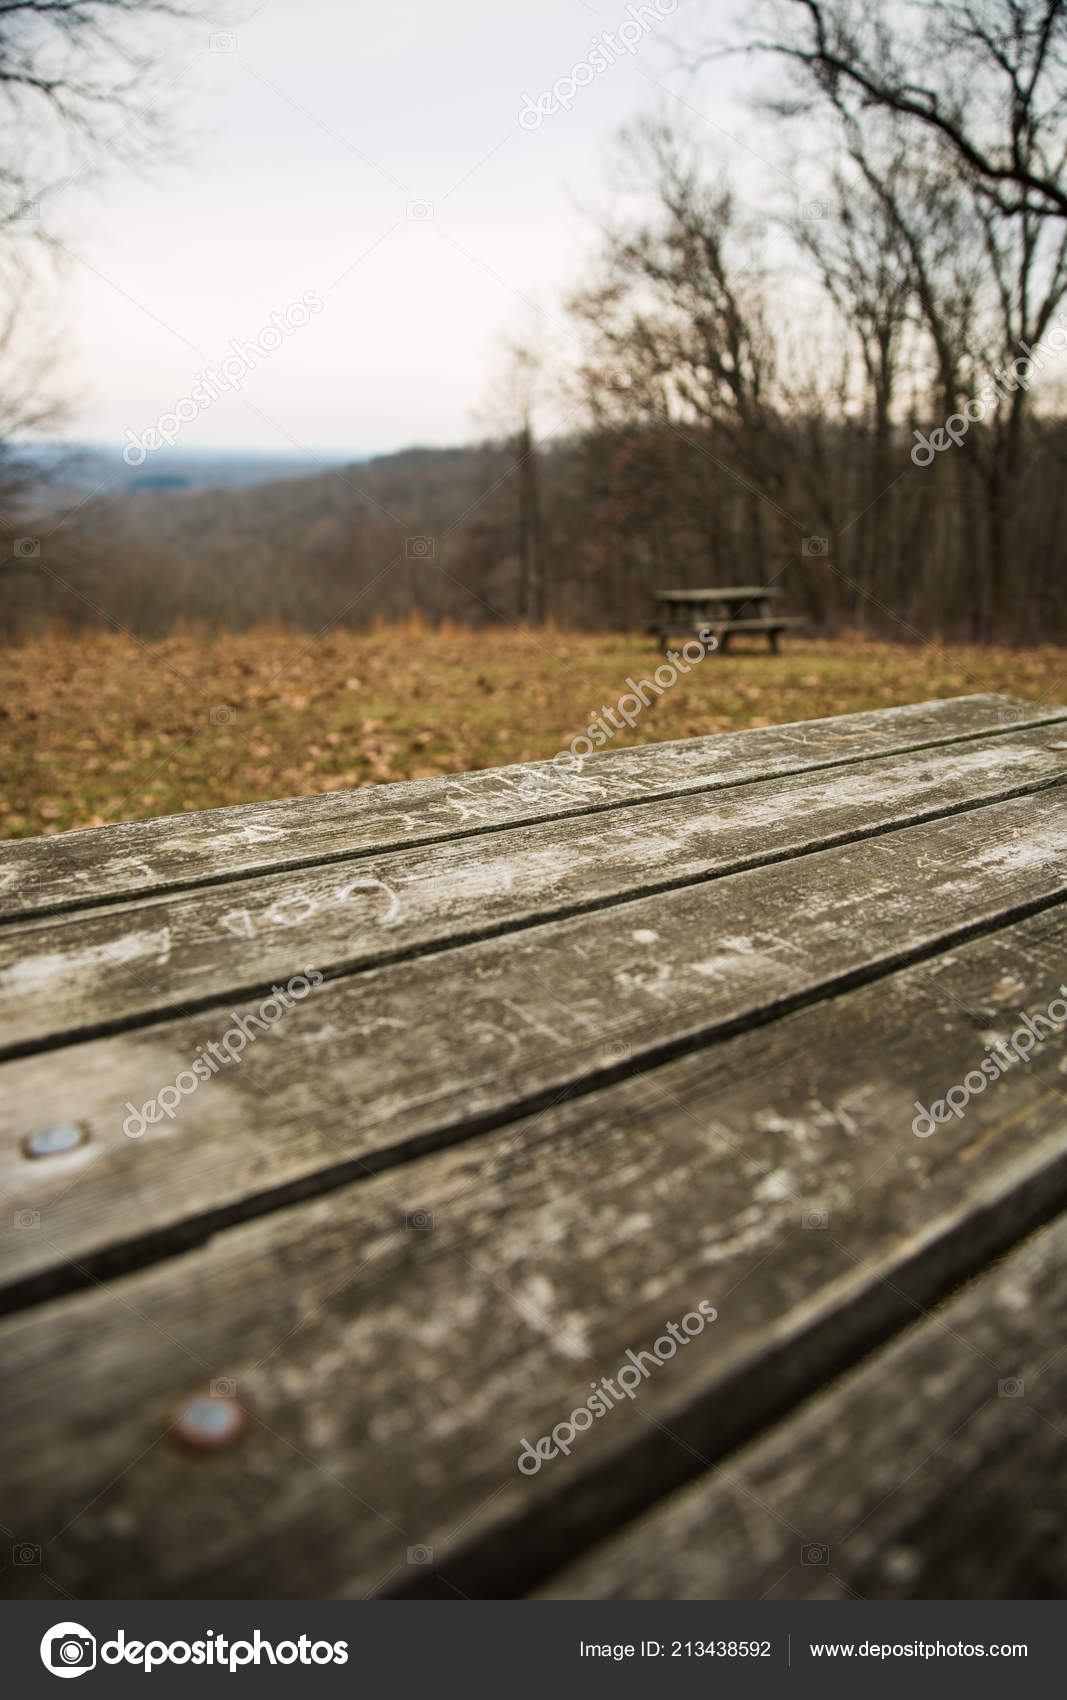 Wooden Picnic Table Park Rolling Hills Grey Winter Day ...